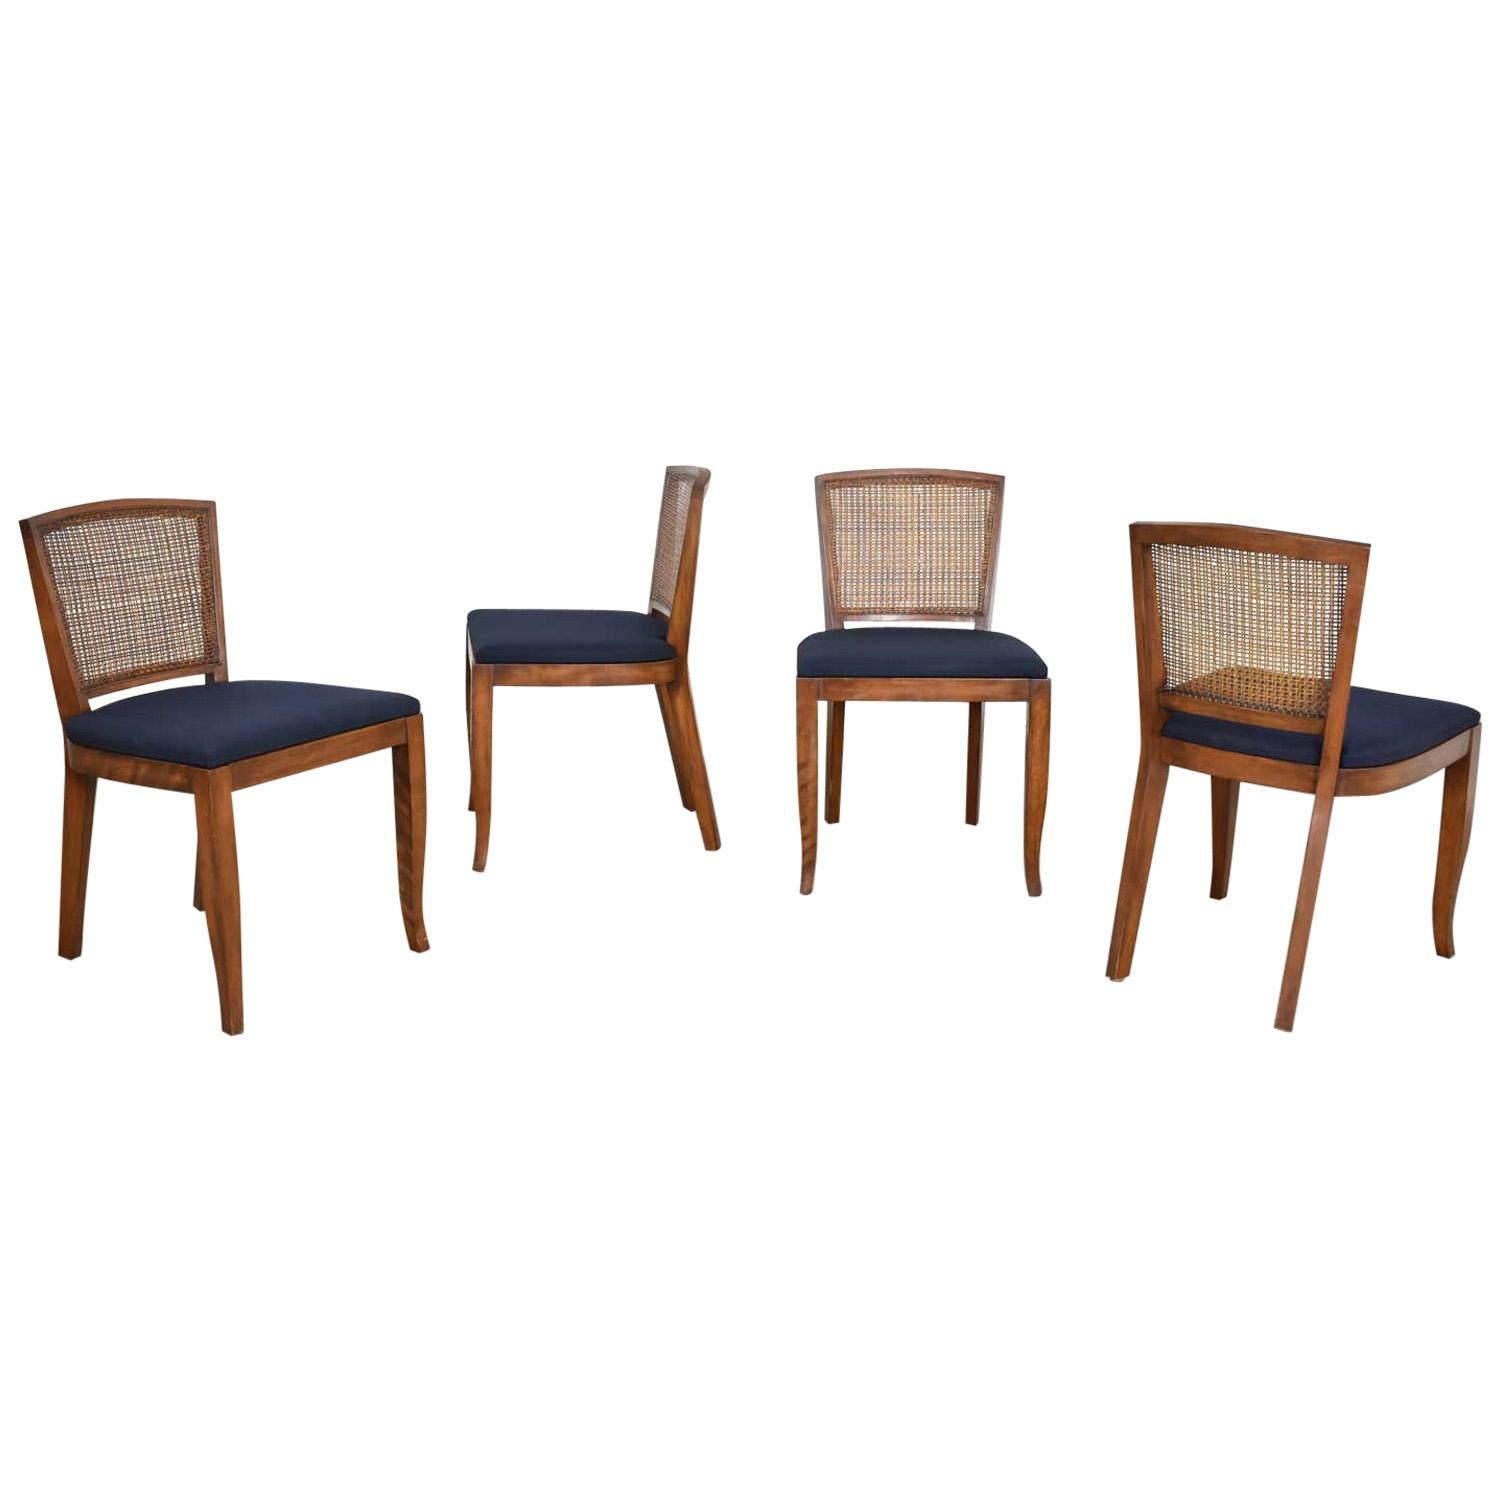 Vintage Mid Century Modern Set Of 4 Cane Back Dining Chairs Newly Upholstered At 1stdibs